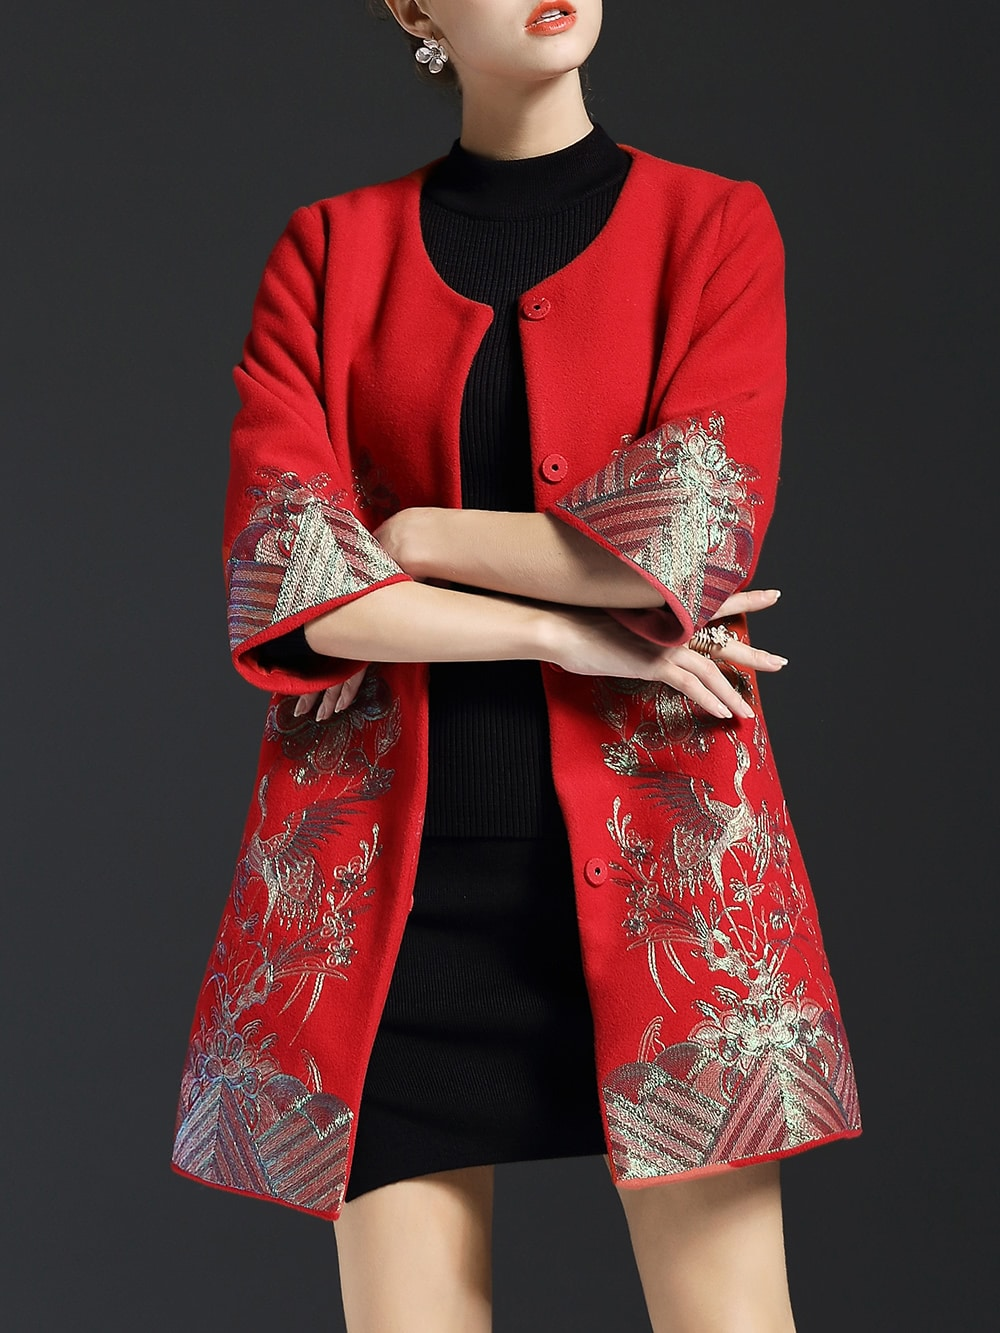 Red Flowers Embroidered Pockets Coat coat161117622